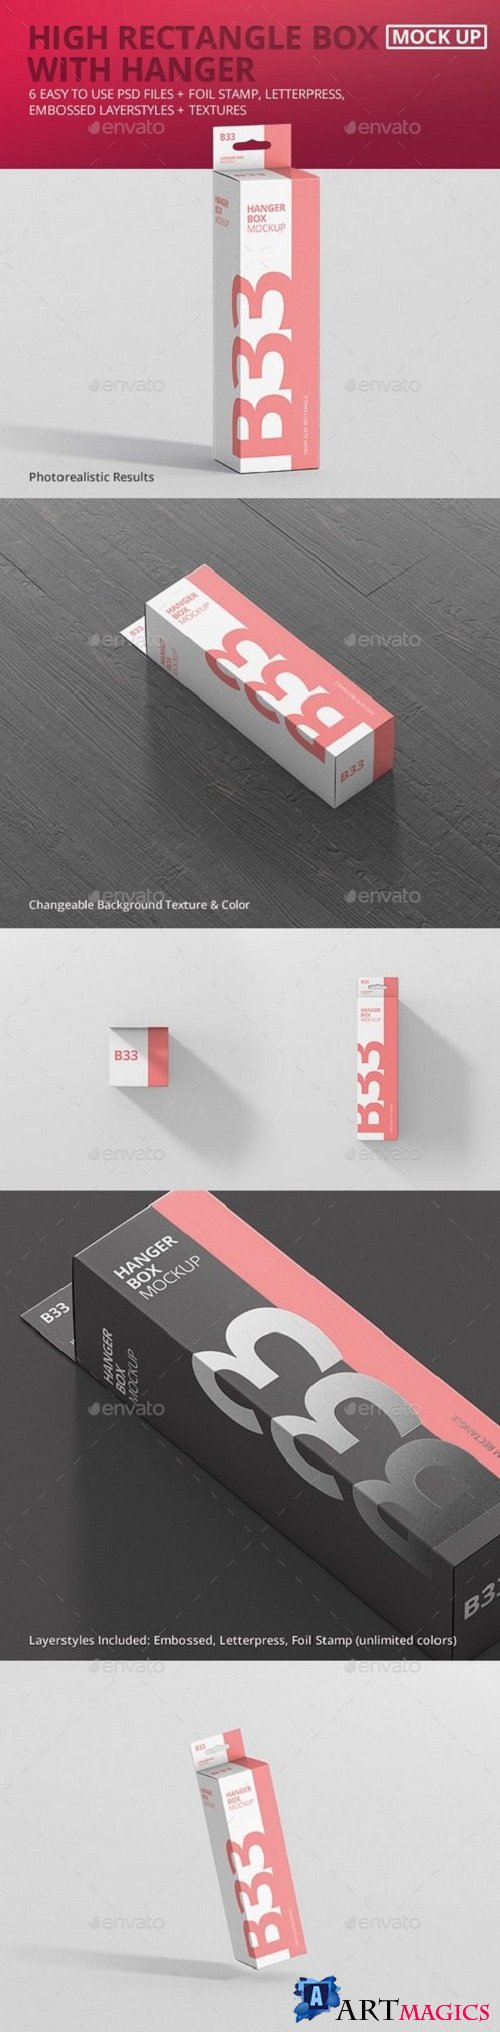 Box Mockup - High Slim Rectangle Size with Hanger 21268347